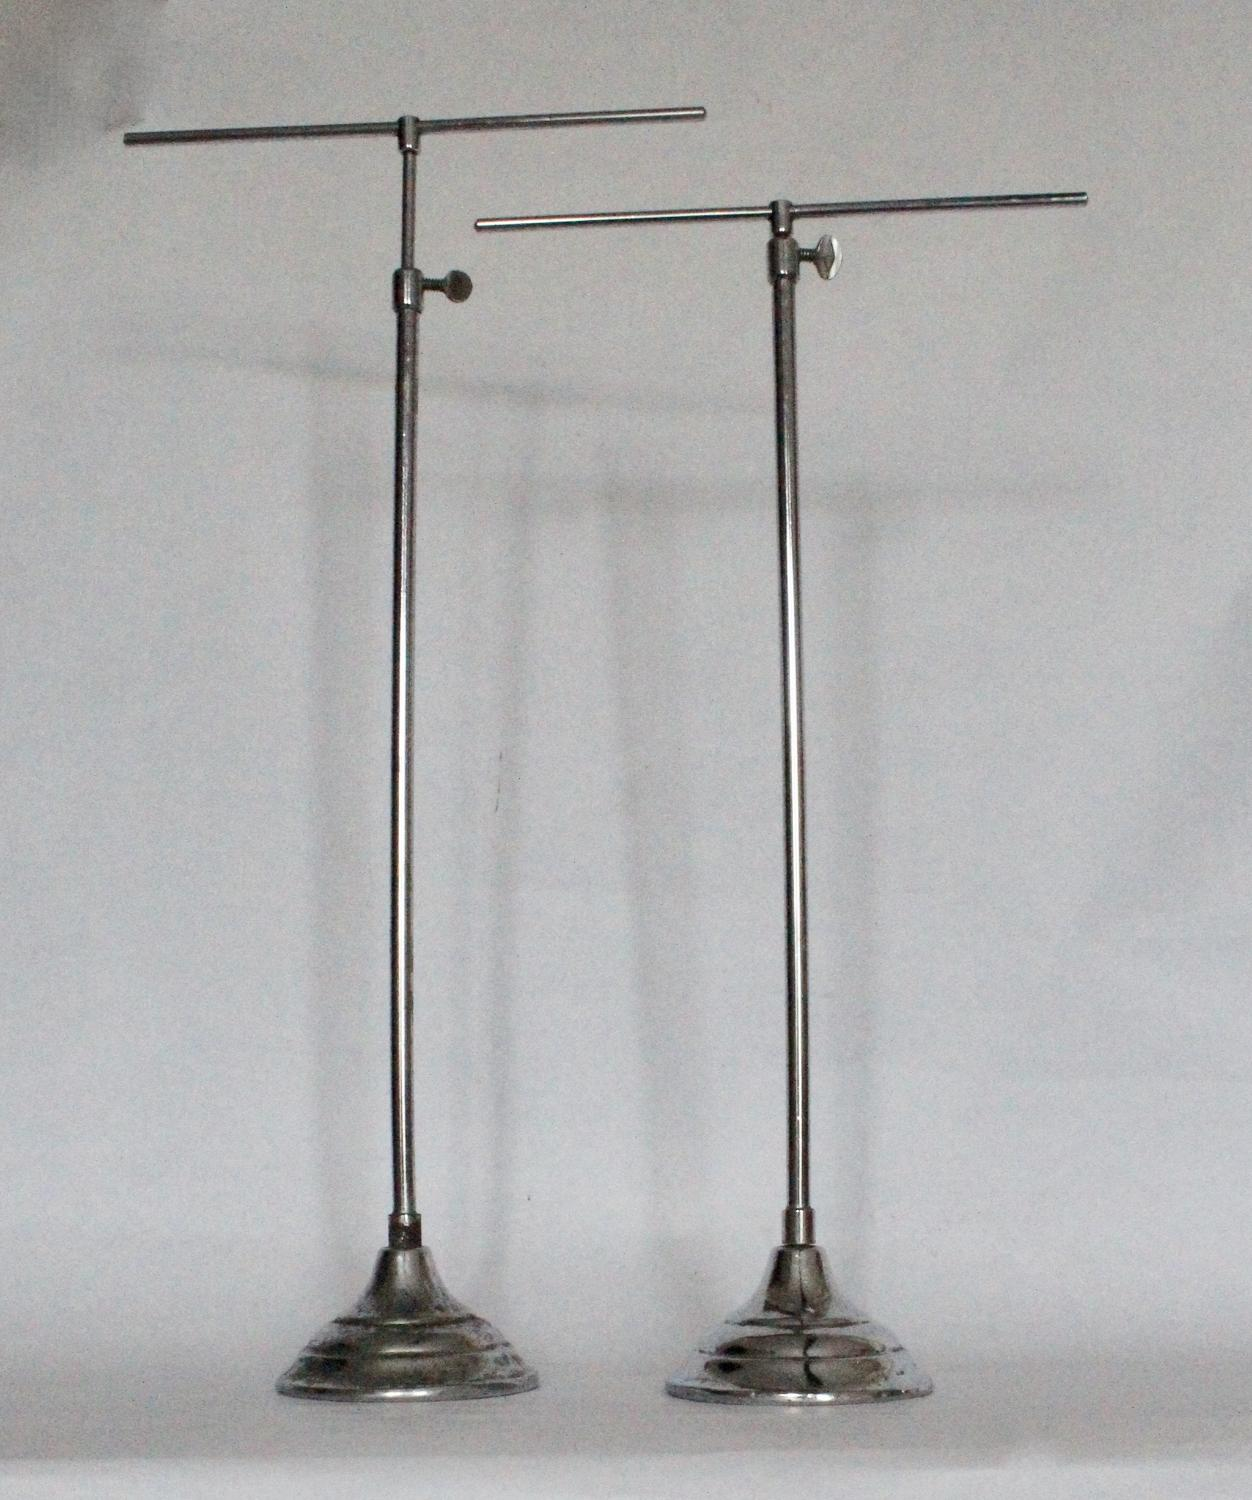 Pair of Telescopic Chrome Shop Display Stands